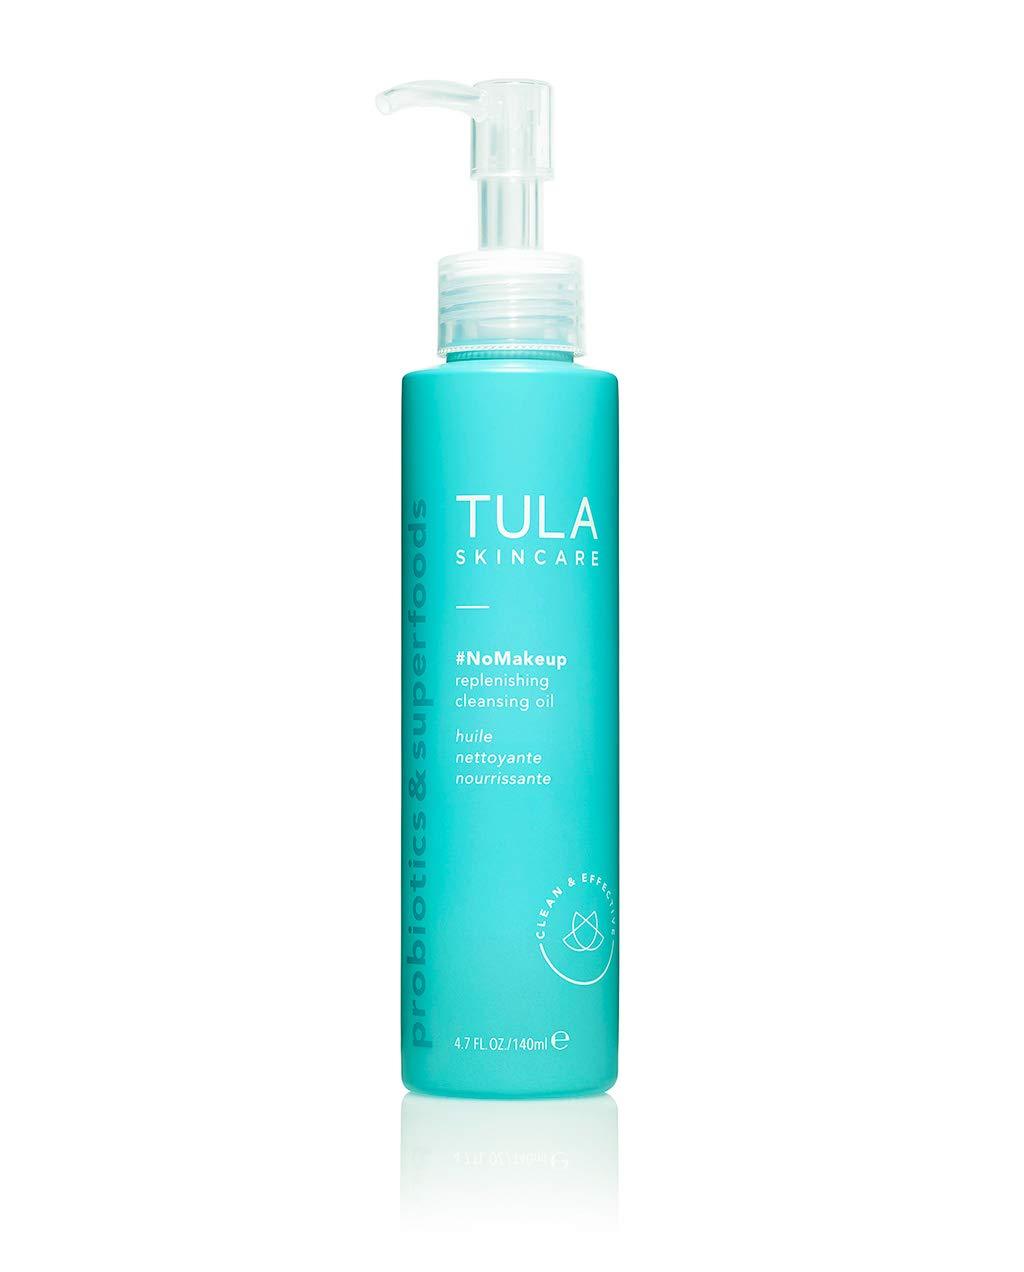 TULA Skin Care #nomakeup Oil Replenishing Cleansing Cleans Ranking Safety and trust TOP11